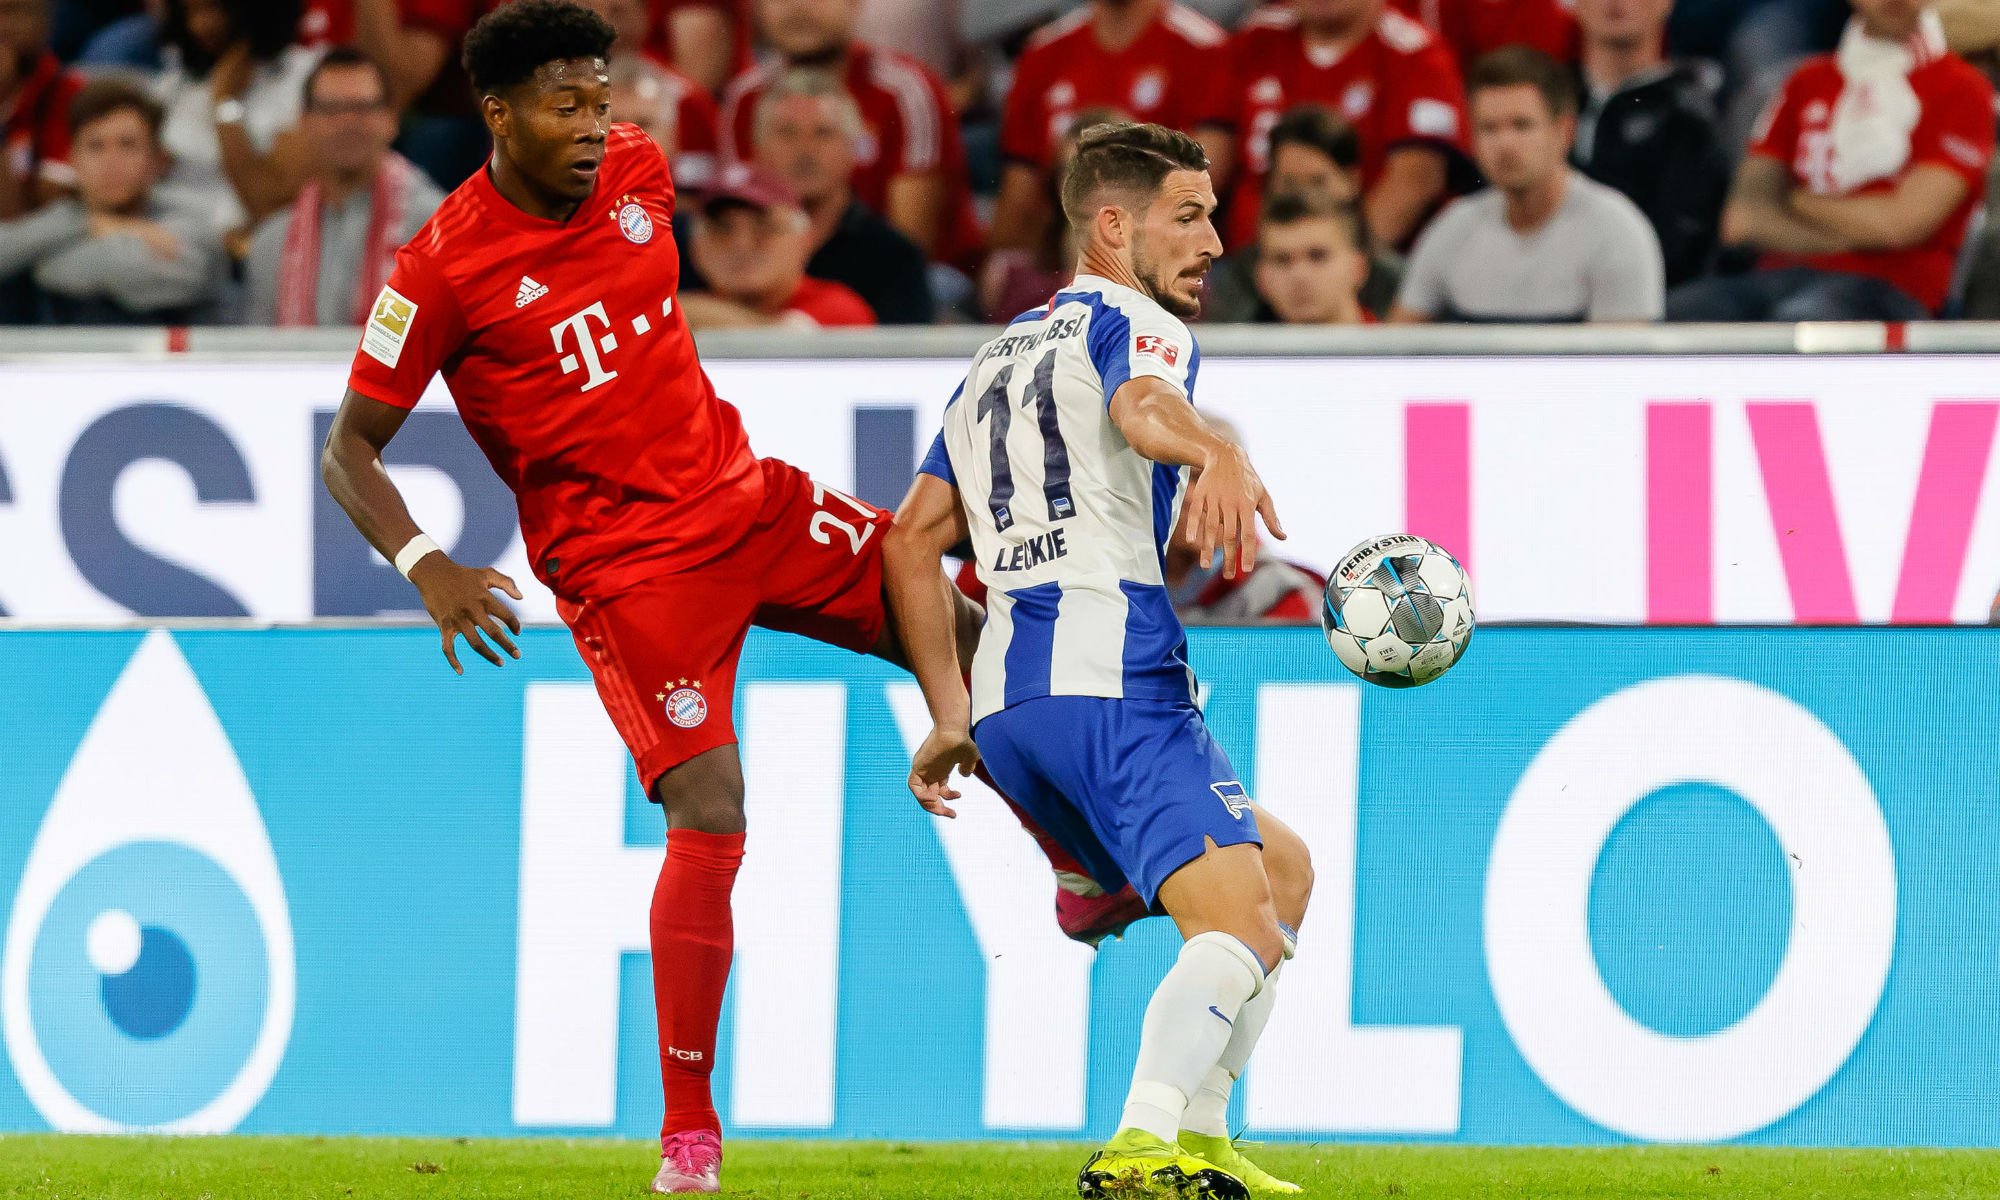 Aussies Abroad: Leckie deployed in new role in Hertha's thrilling Bundesliga clash with Bayern Munich